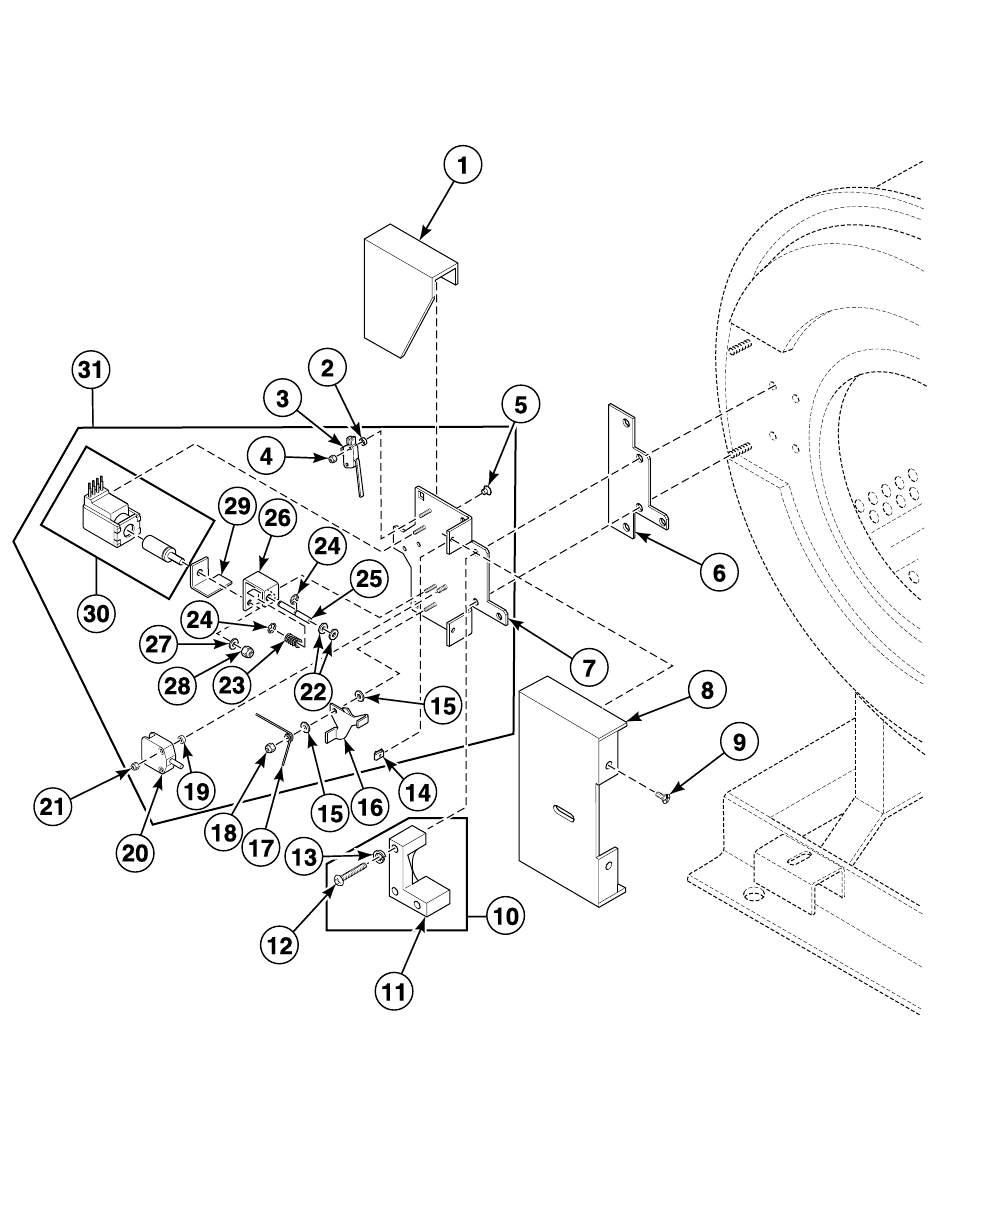 Washer Extractor Parts Manual 30 Pound Capacity F232194 F935 Wiring Diagram Schematic 70